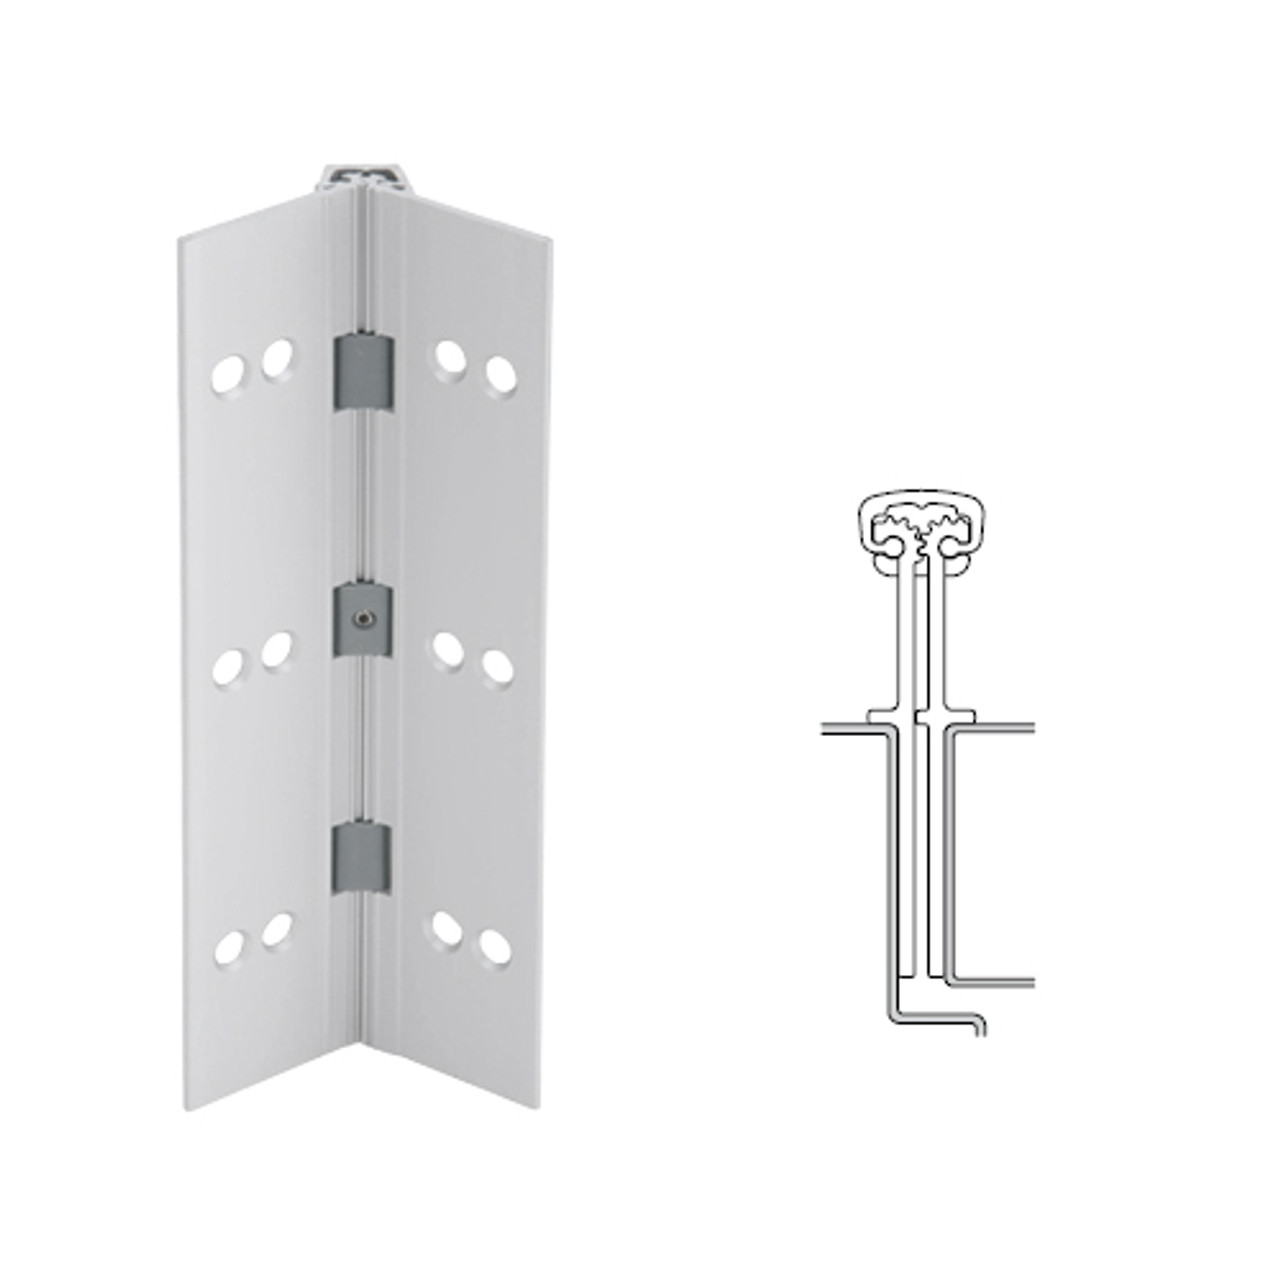 040XY-US28-85-WD IVES Full Mortise Continuous Geared Hinges with Wood Screws in Satin Aluminum